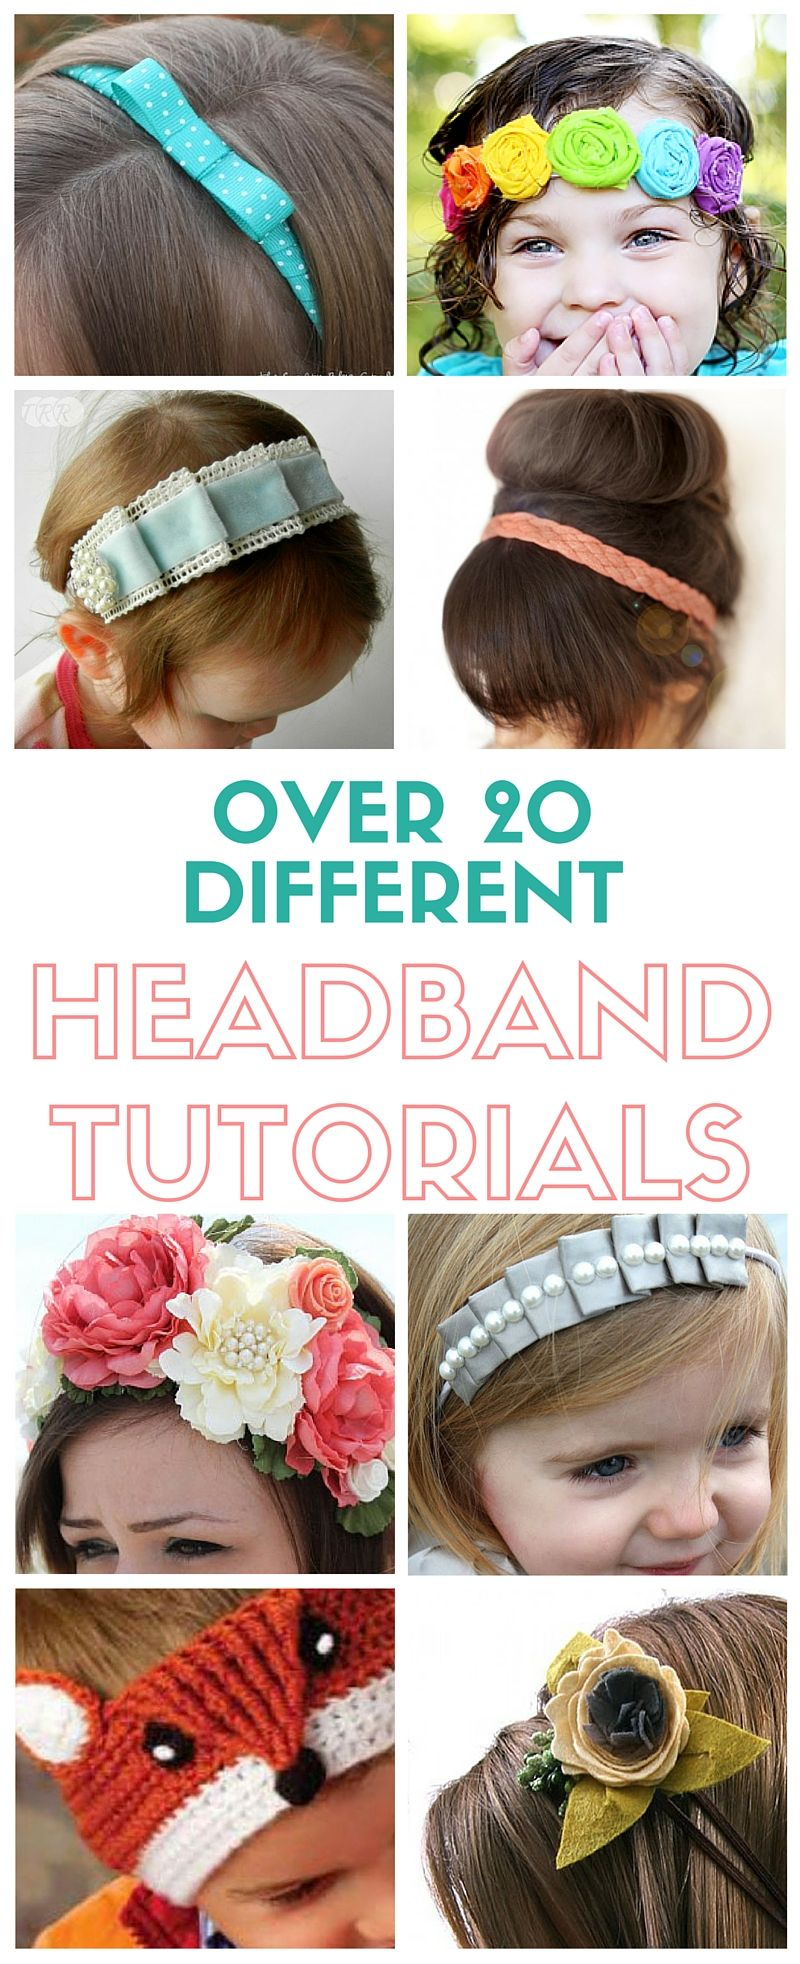 Over 20 different headband tutorials headband tutorial headband over 20 different headband tutorials in one place find floral headbands crochet headbands baditri Image collections